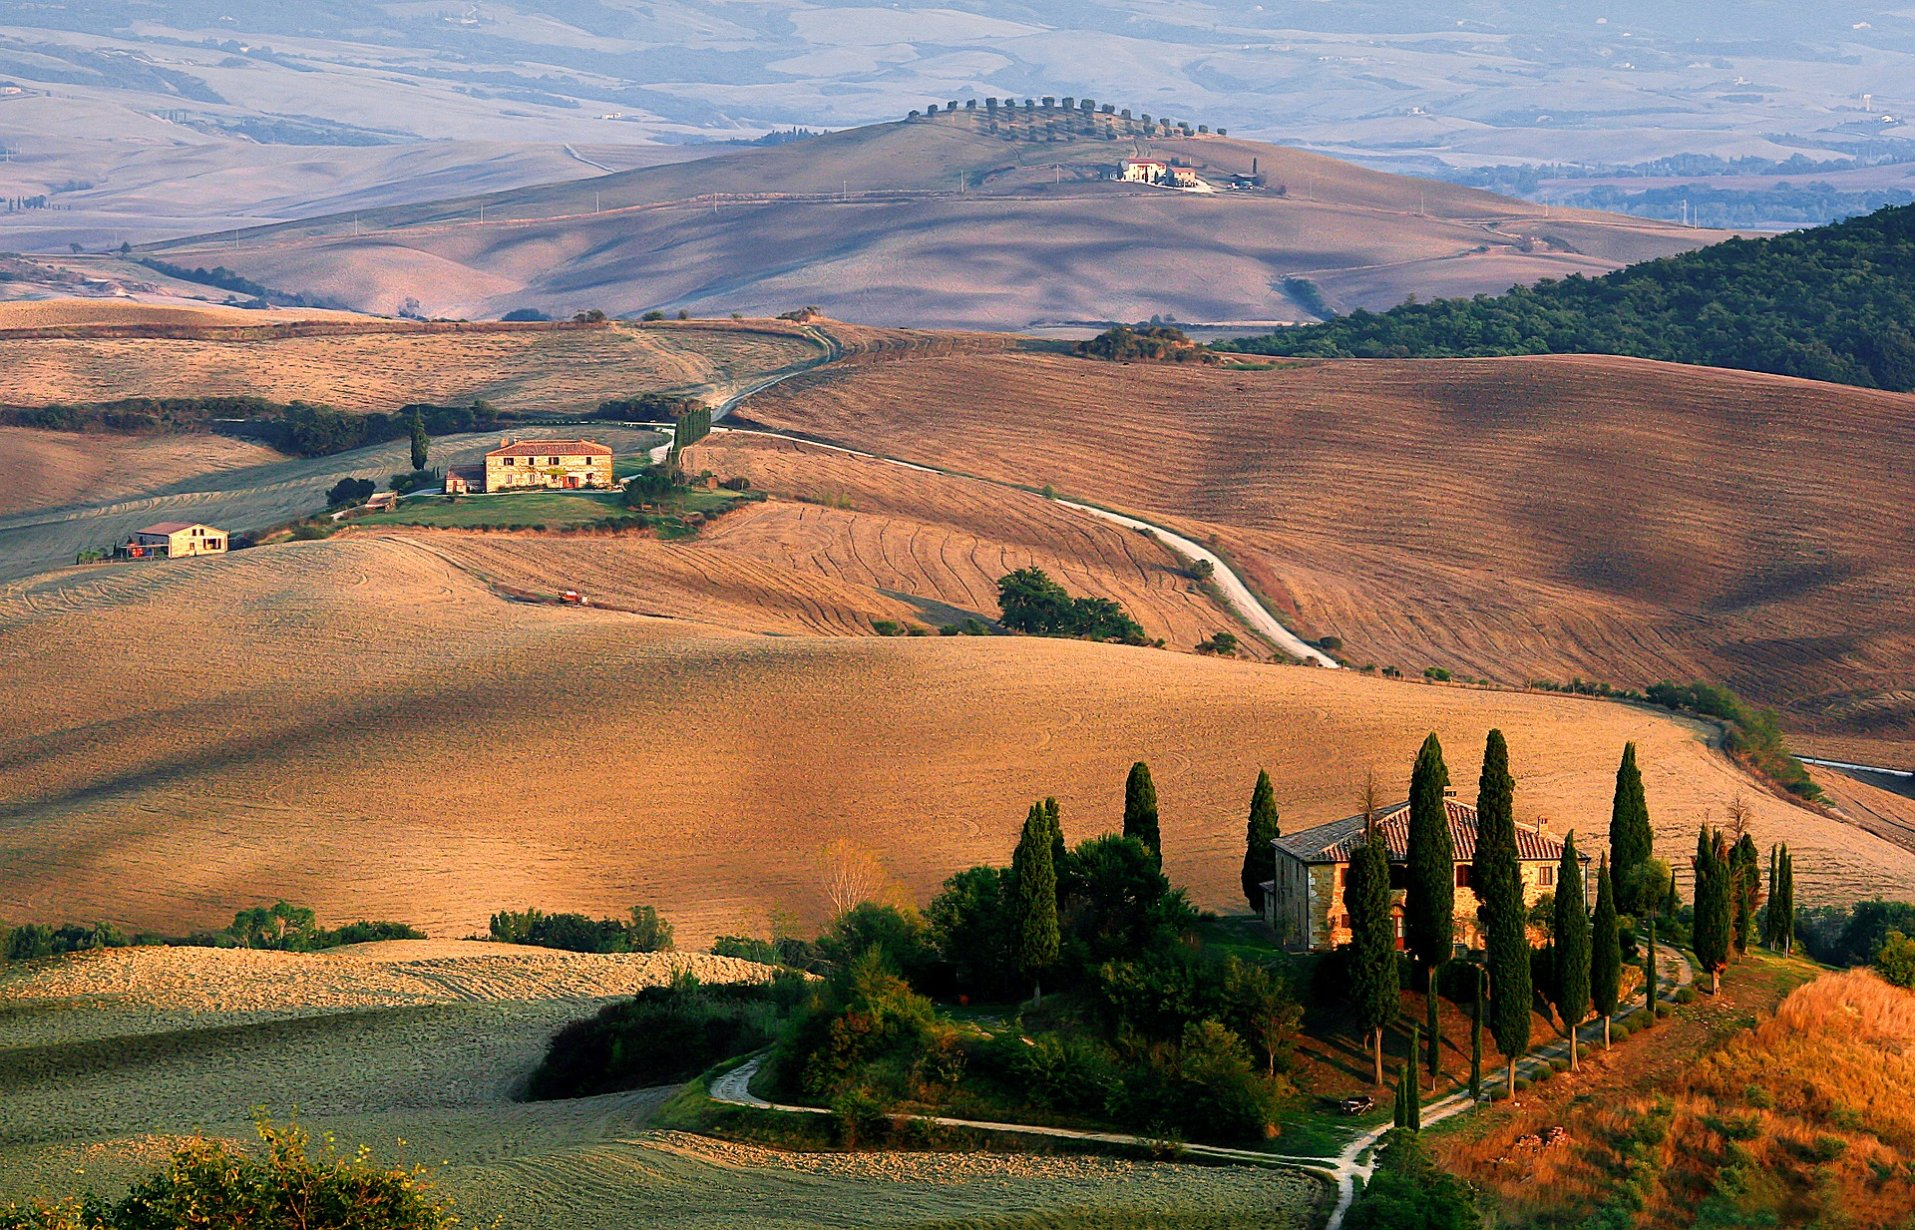 best wine tours in tuscany italy - photo#25